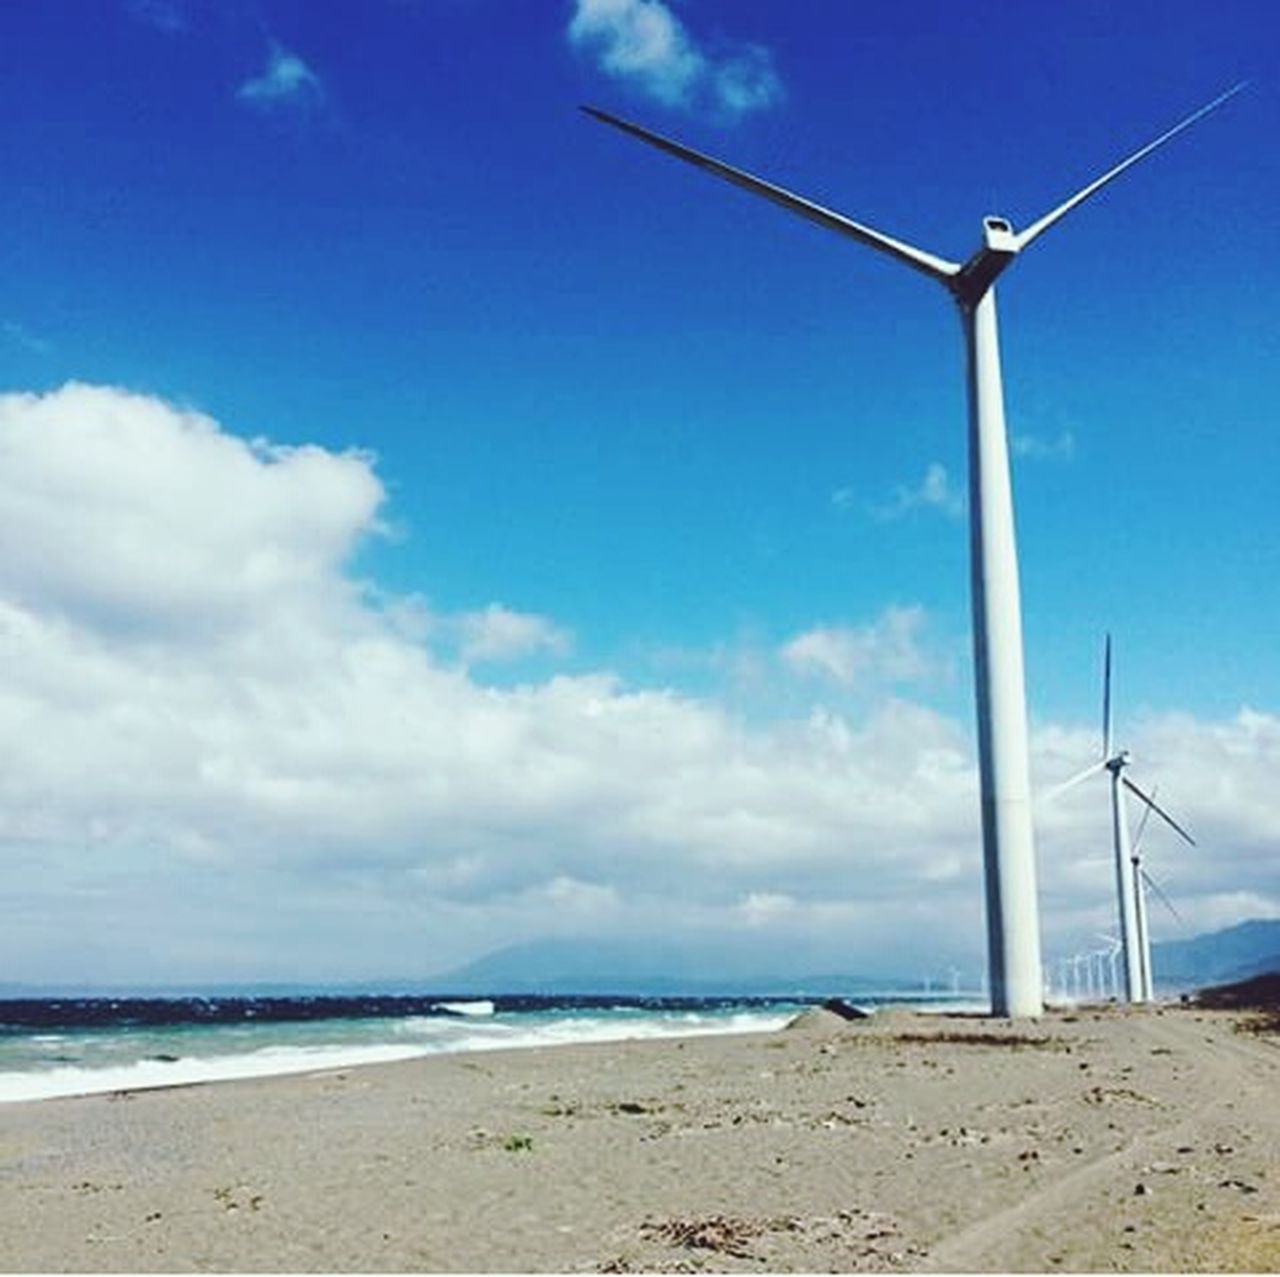 cloud - sky, wind power, sky, sea, environmental conservation, wind turbine, beach, alternative energy, nature, fuel and power generation, blue, wind, sand, outdoors, horizon over water, no people, scenics, day, rural scene, water, power in nature, technology